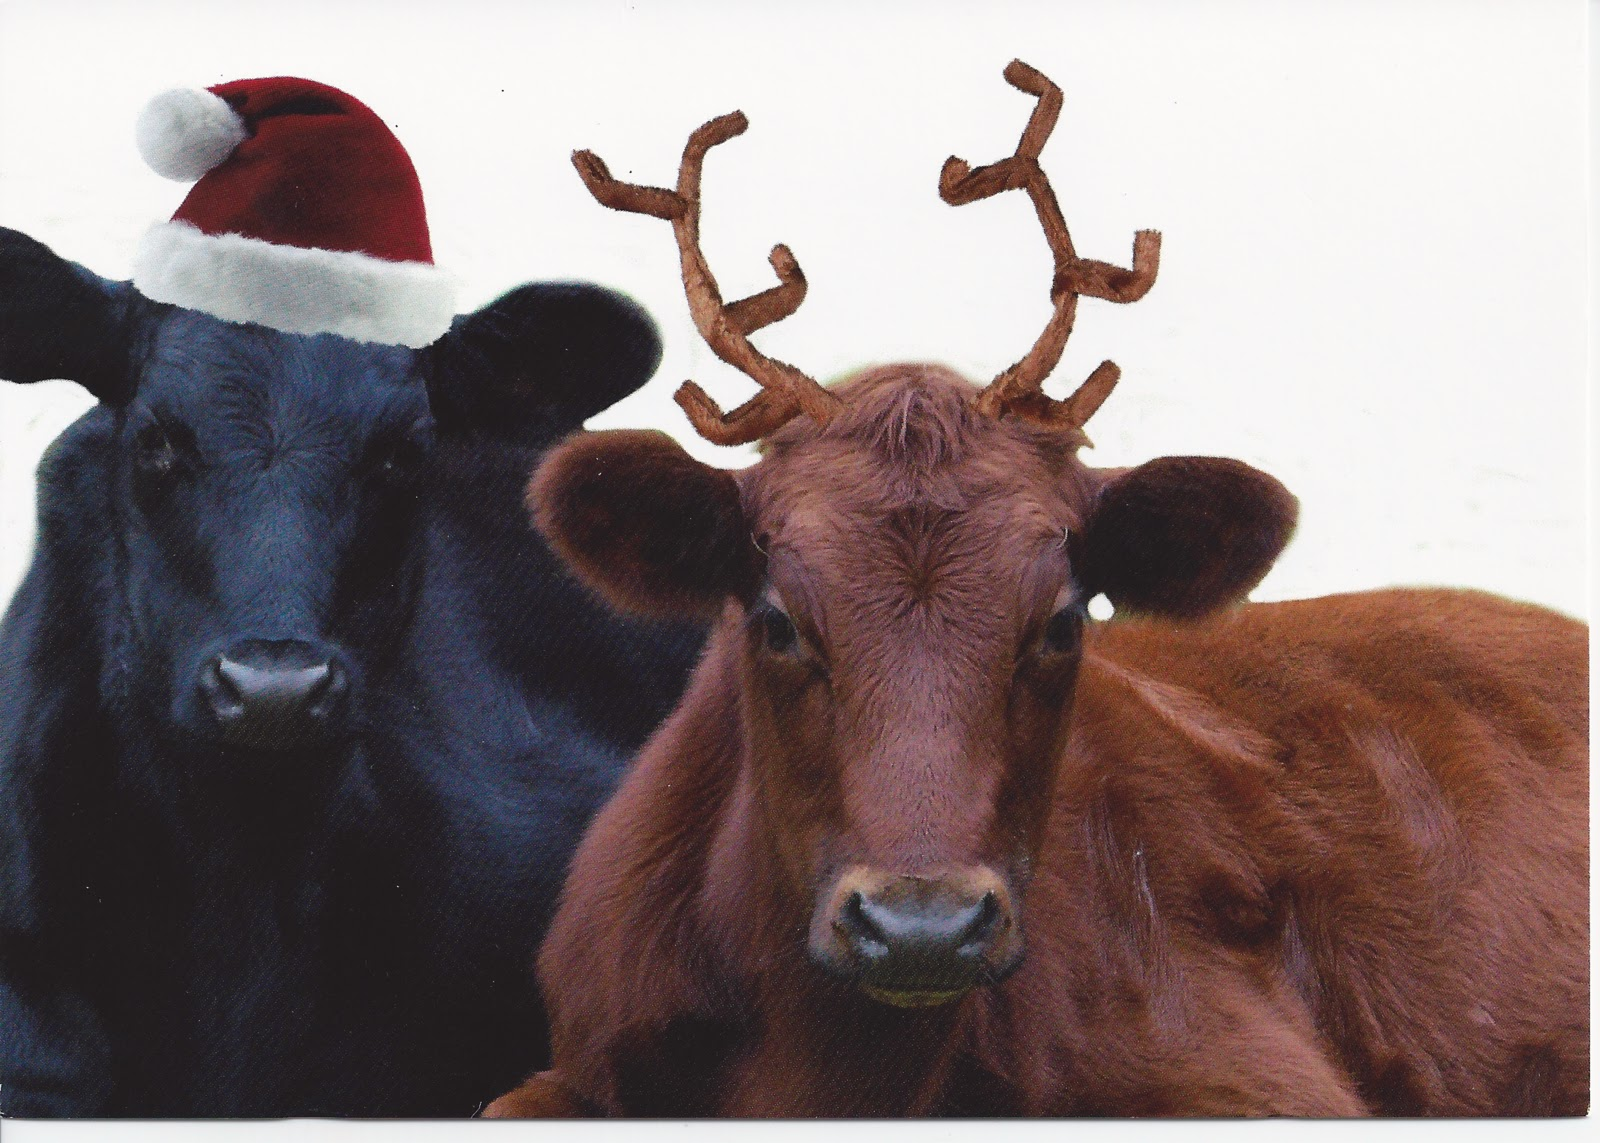 Cows Christmas Cards | www.topsimages.com